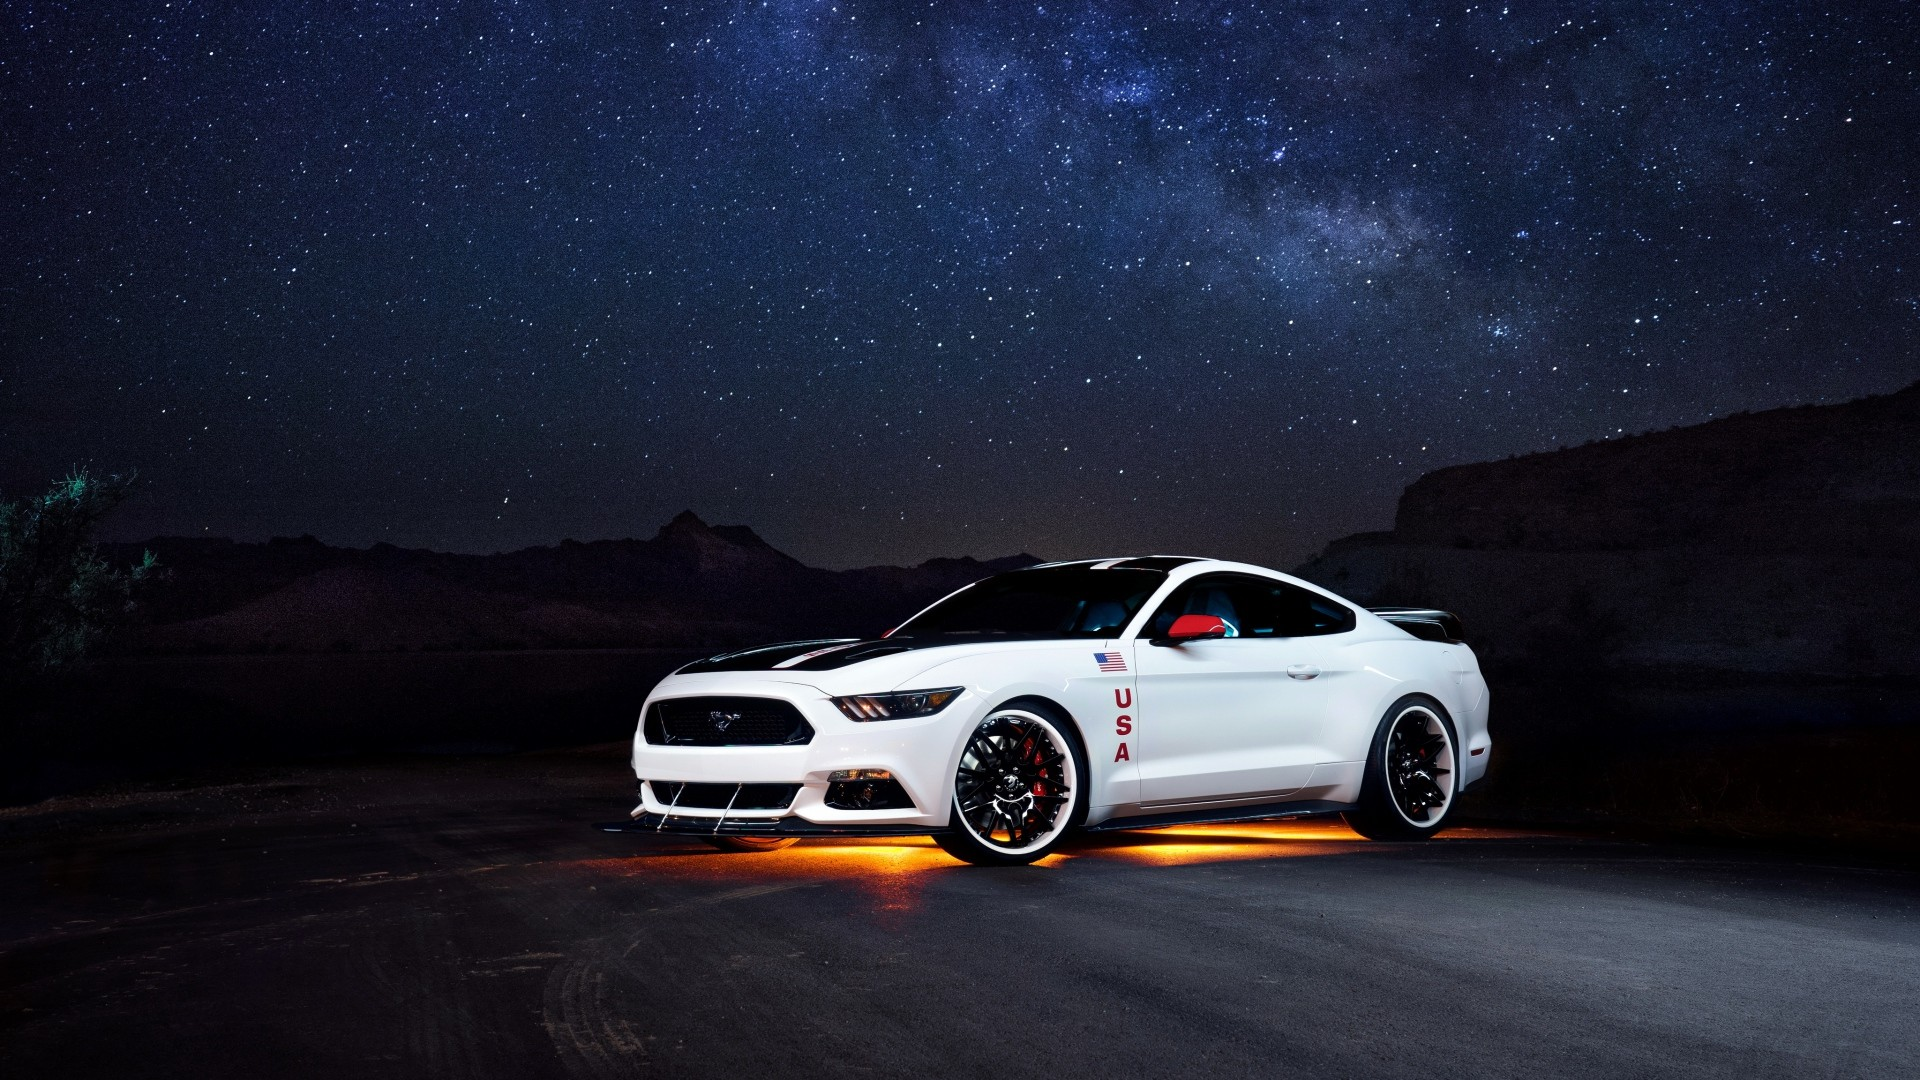 Ford Mustang Wallpaper With Girls 70 Images